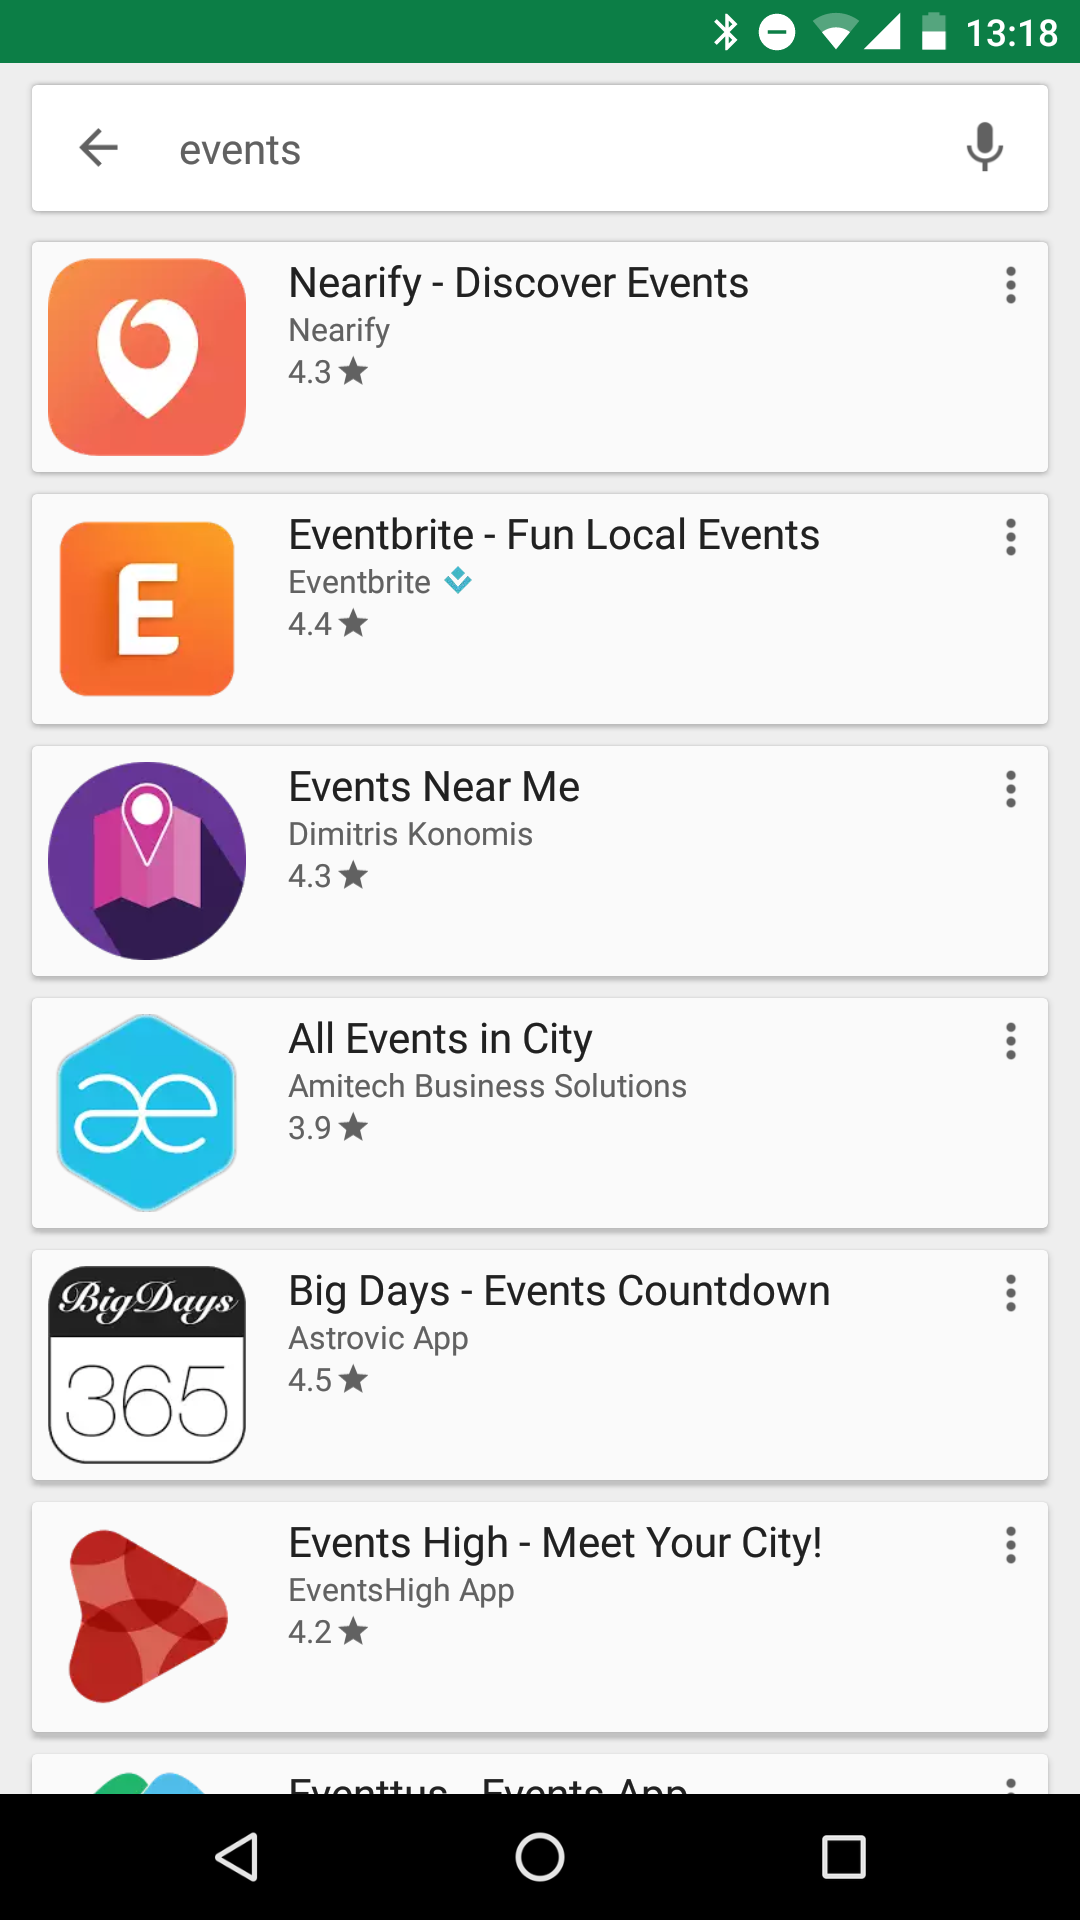 Where to find events: Smartphone apps for event discovery